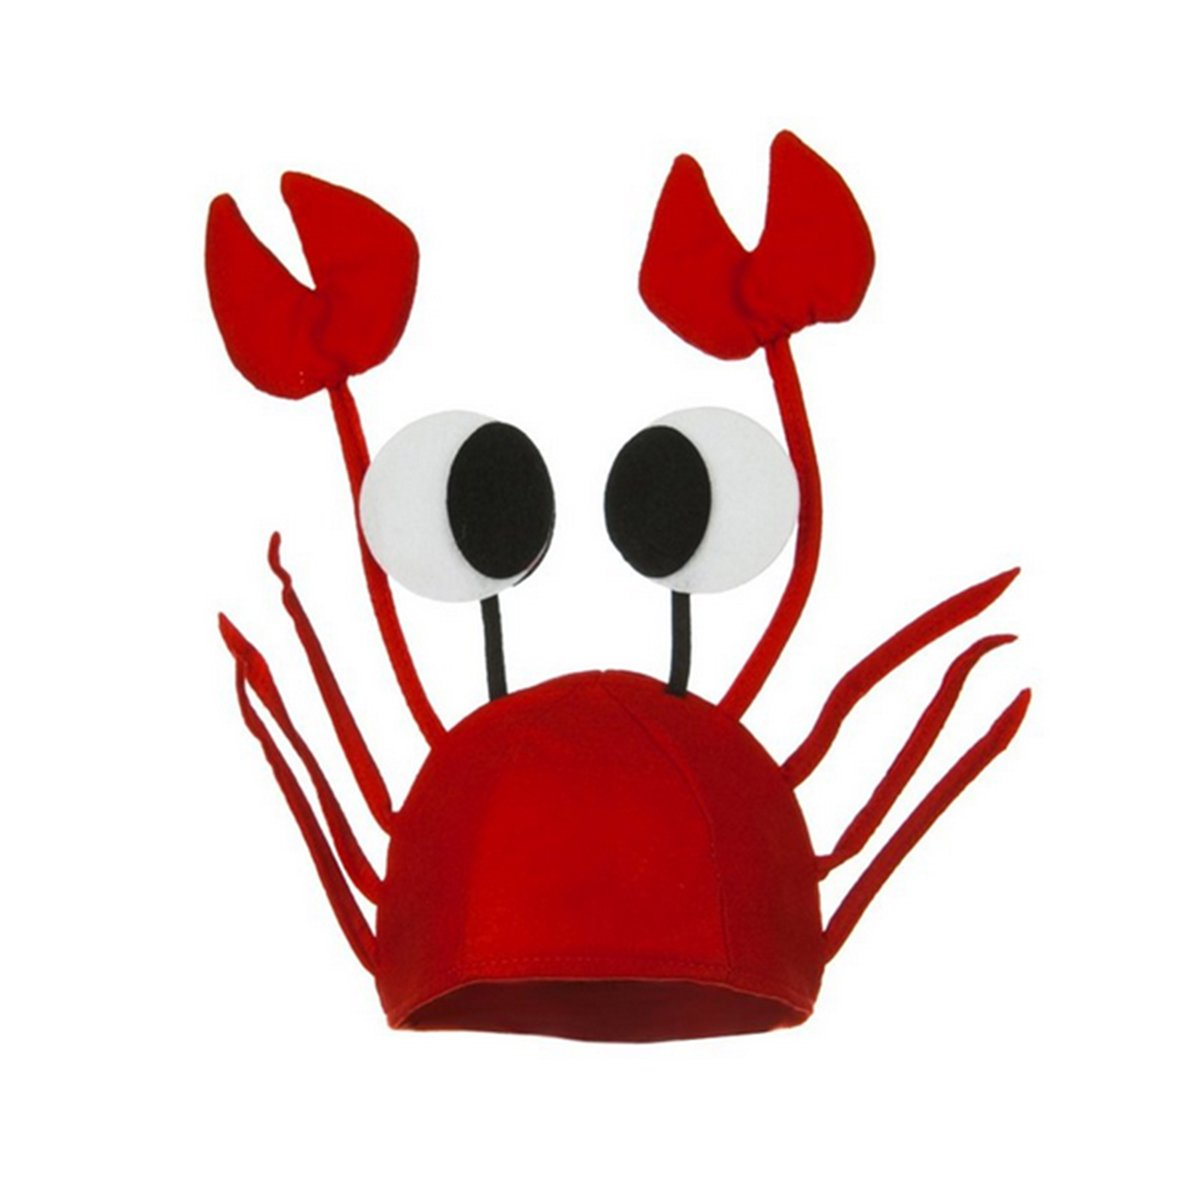 Men's Women's Novelty Hat 3D Lobster Crawfish Crab Seafood Hat With Claws (Crab)